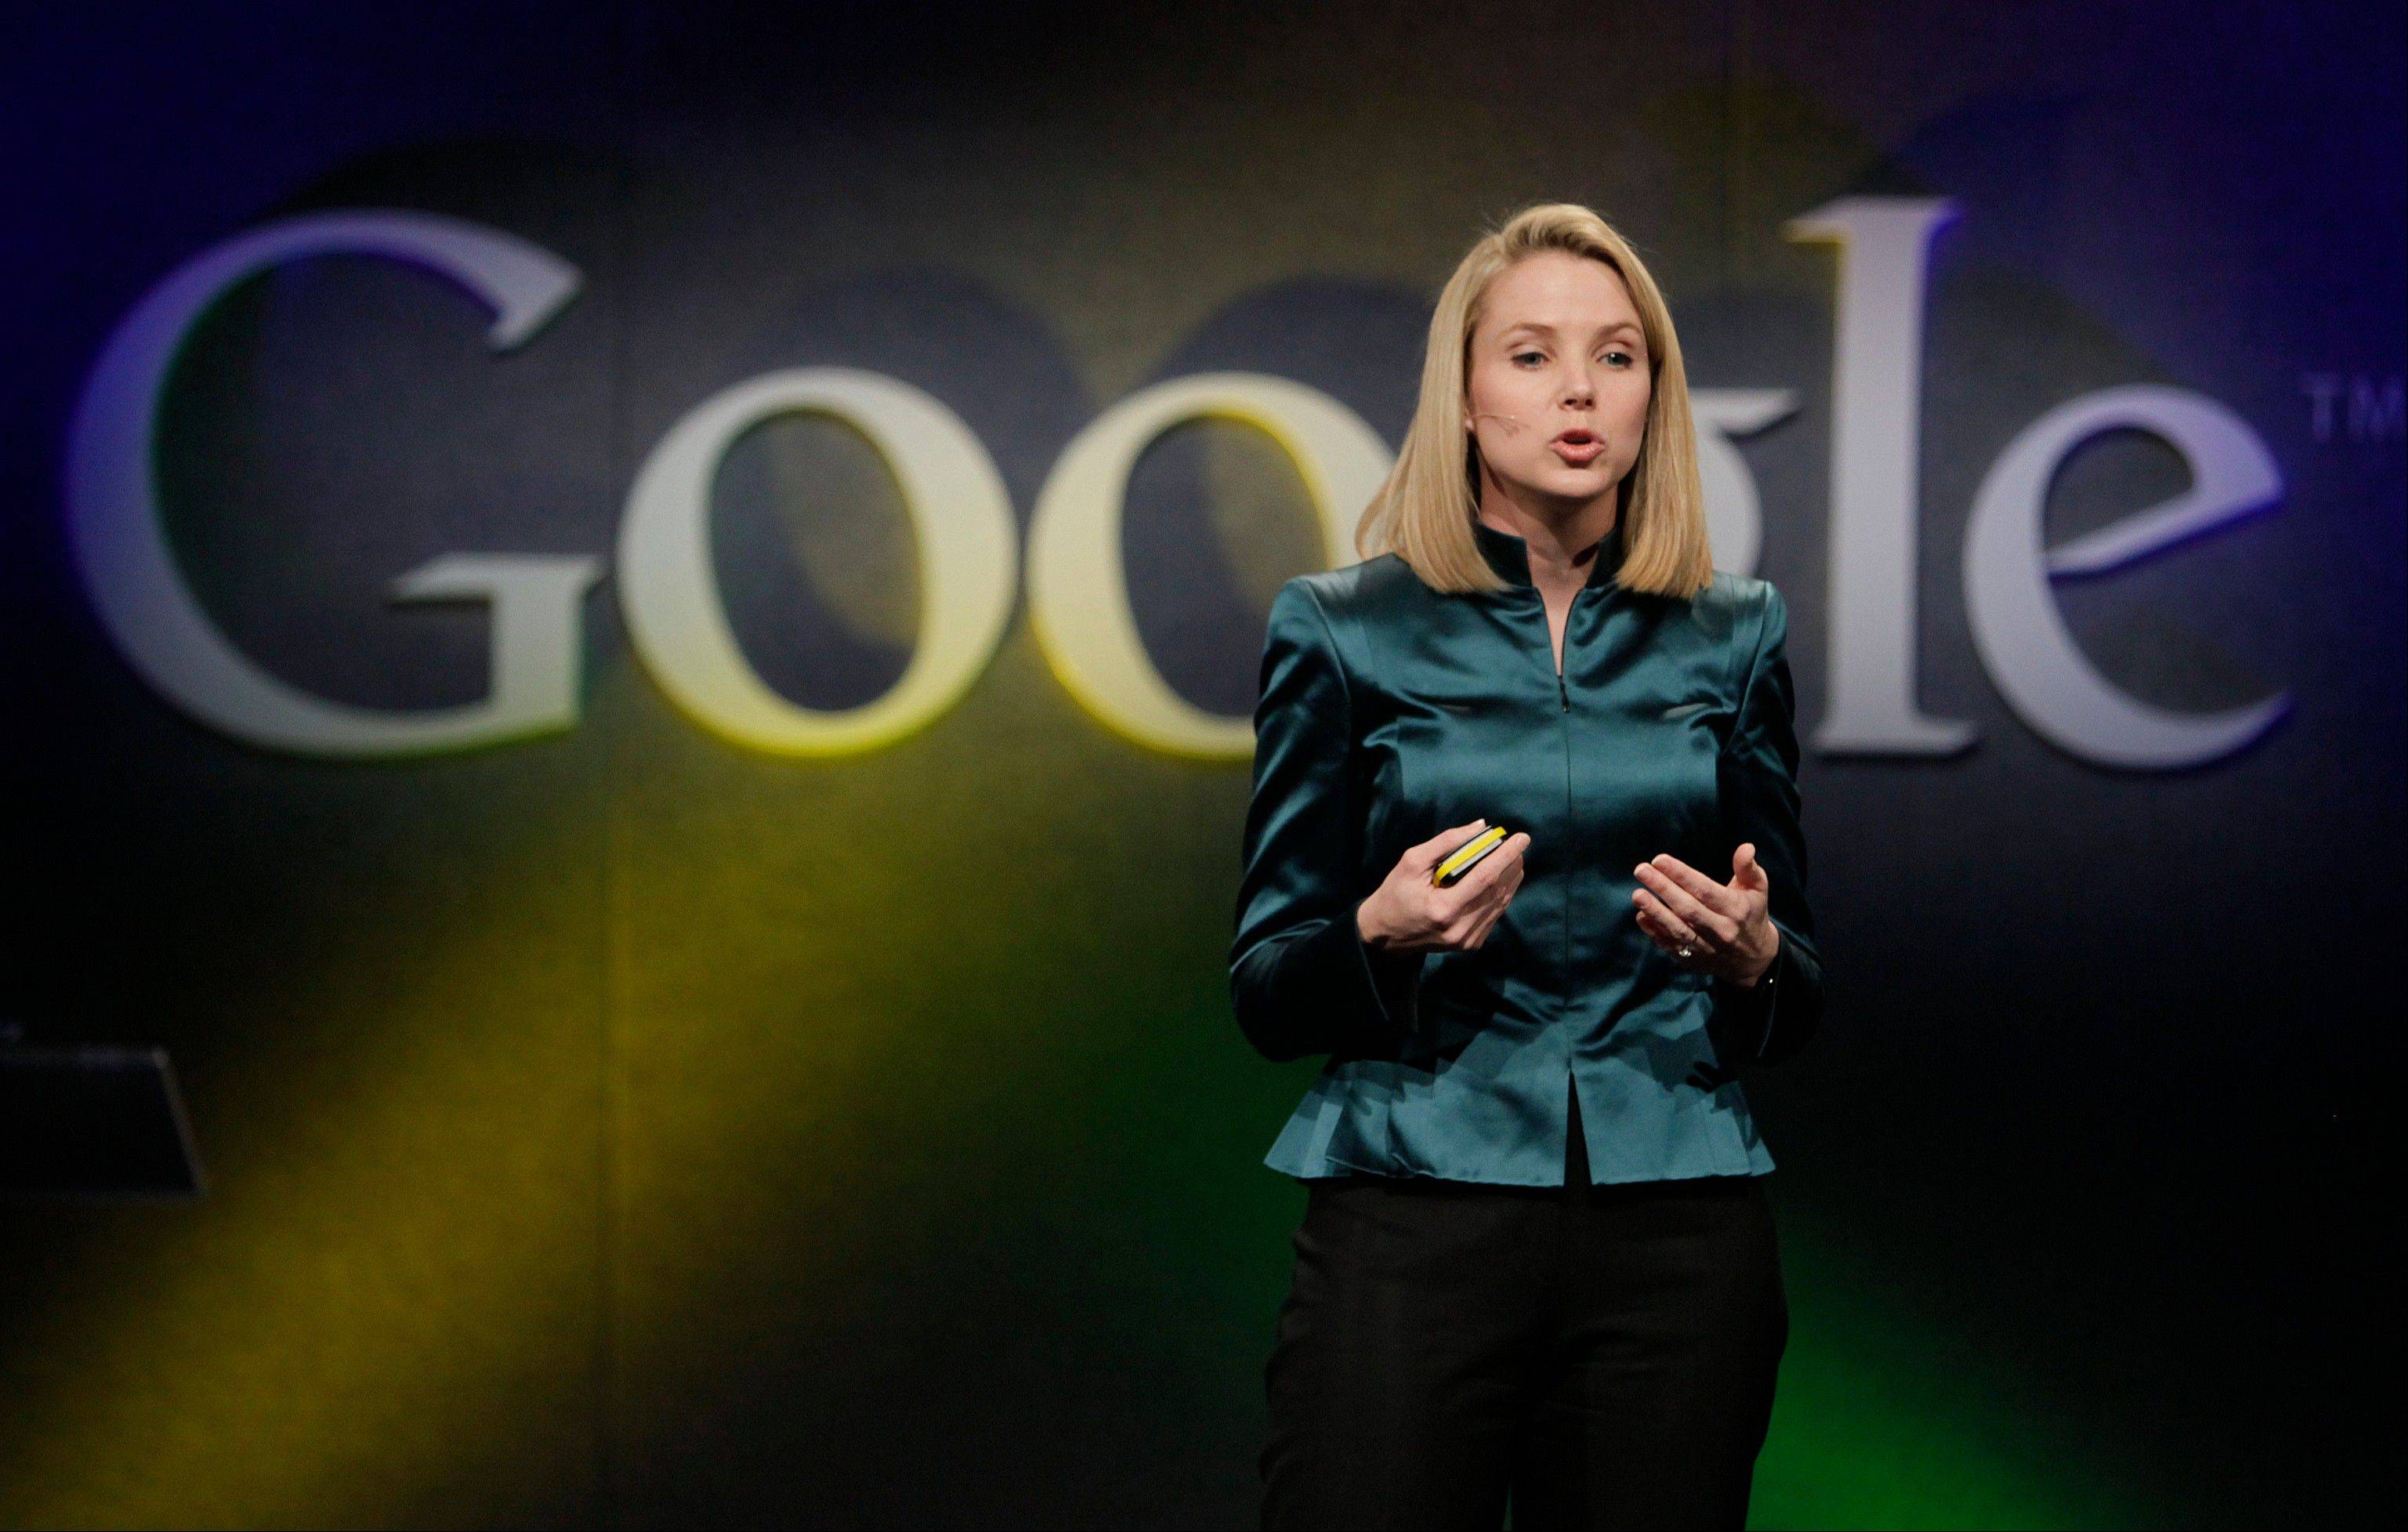 Marissa Mayer, formerly a vice president at Google, will be Yahoo's next CEO, the fifth in five years as the company struggles to rebound from years of financial malaise and internal turmoil.